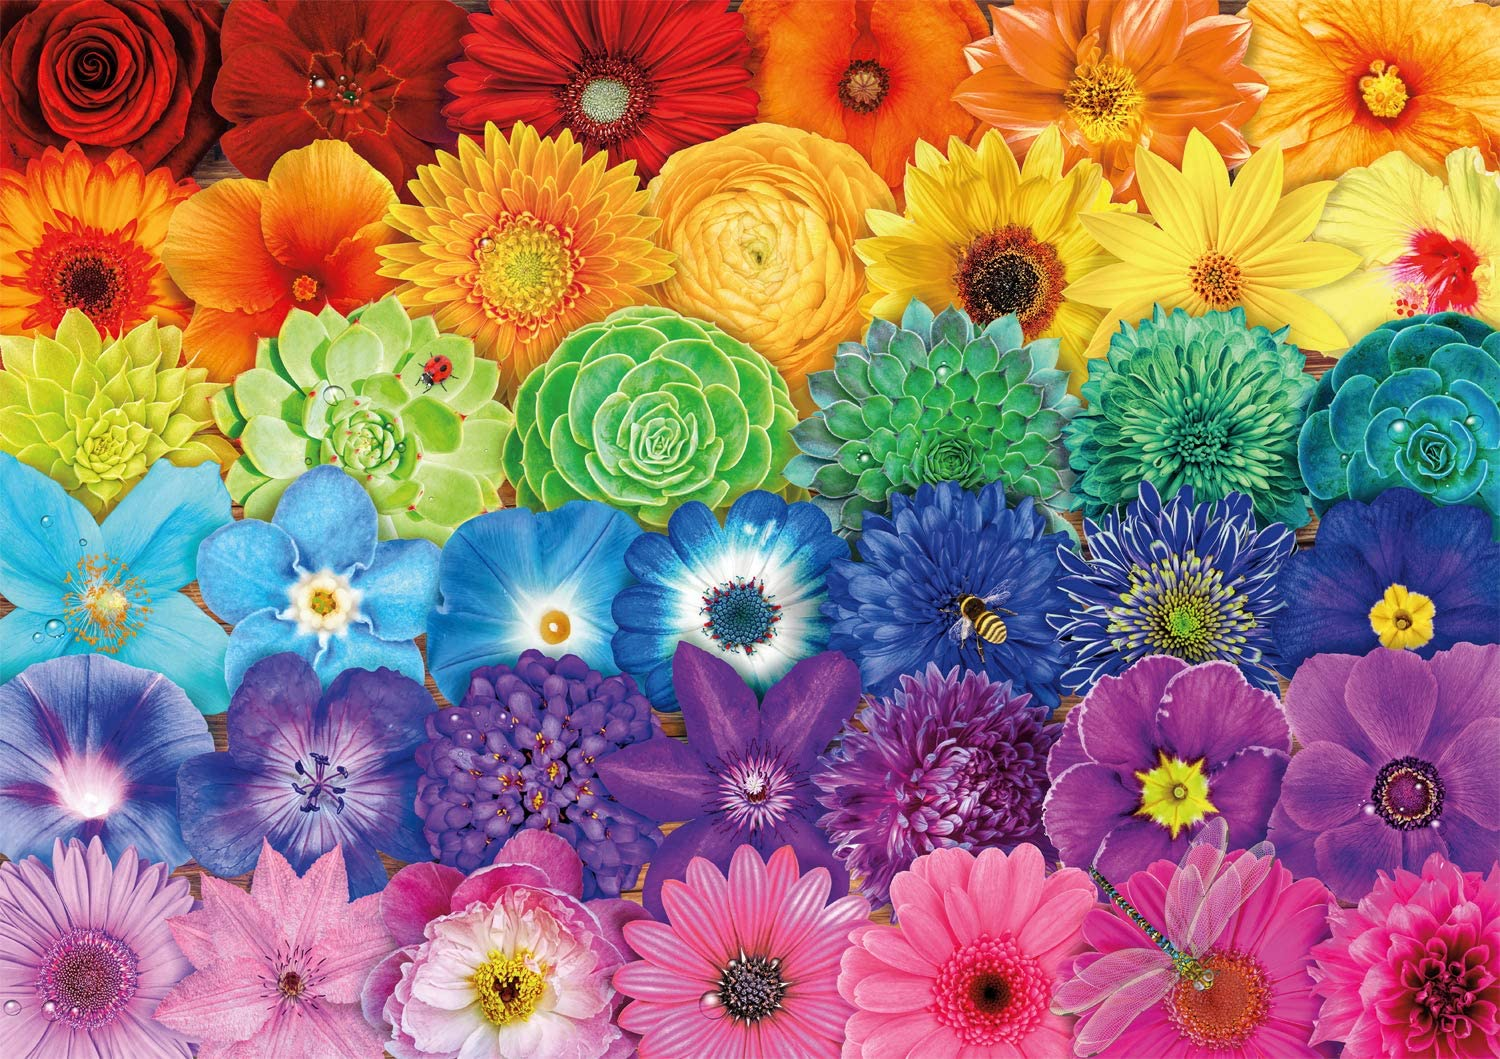 Buffalo Games - Flower Spectrum - 300 Large Piece Jigsaw Puzzle